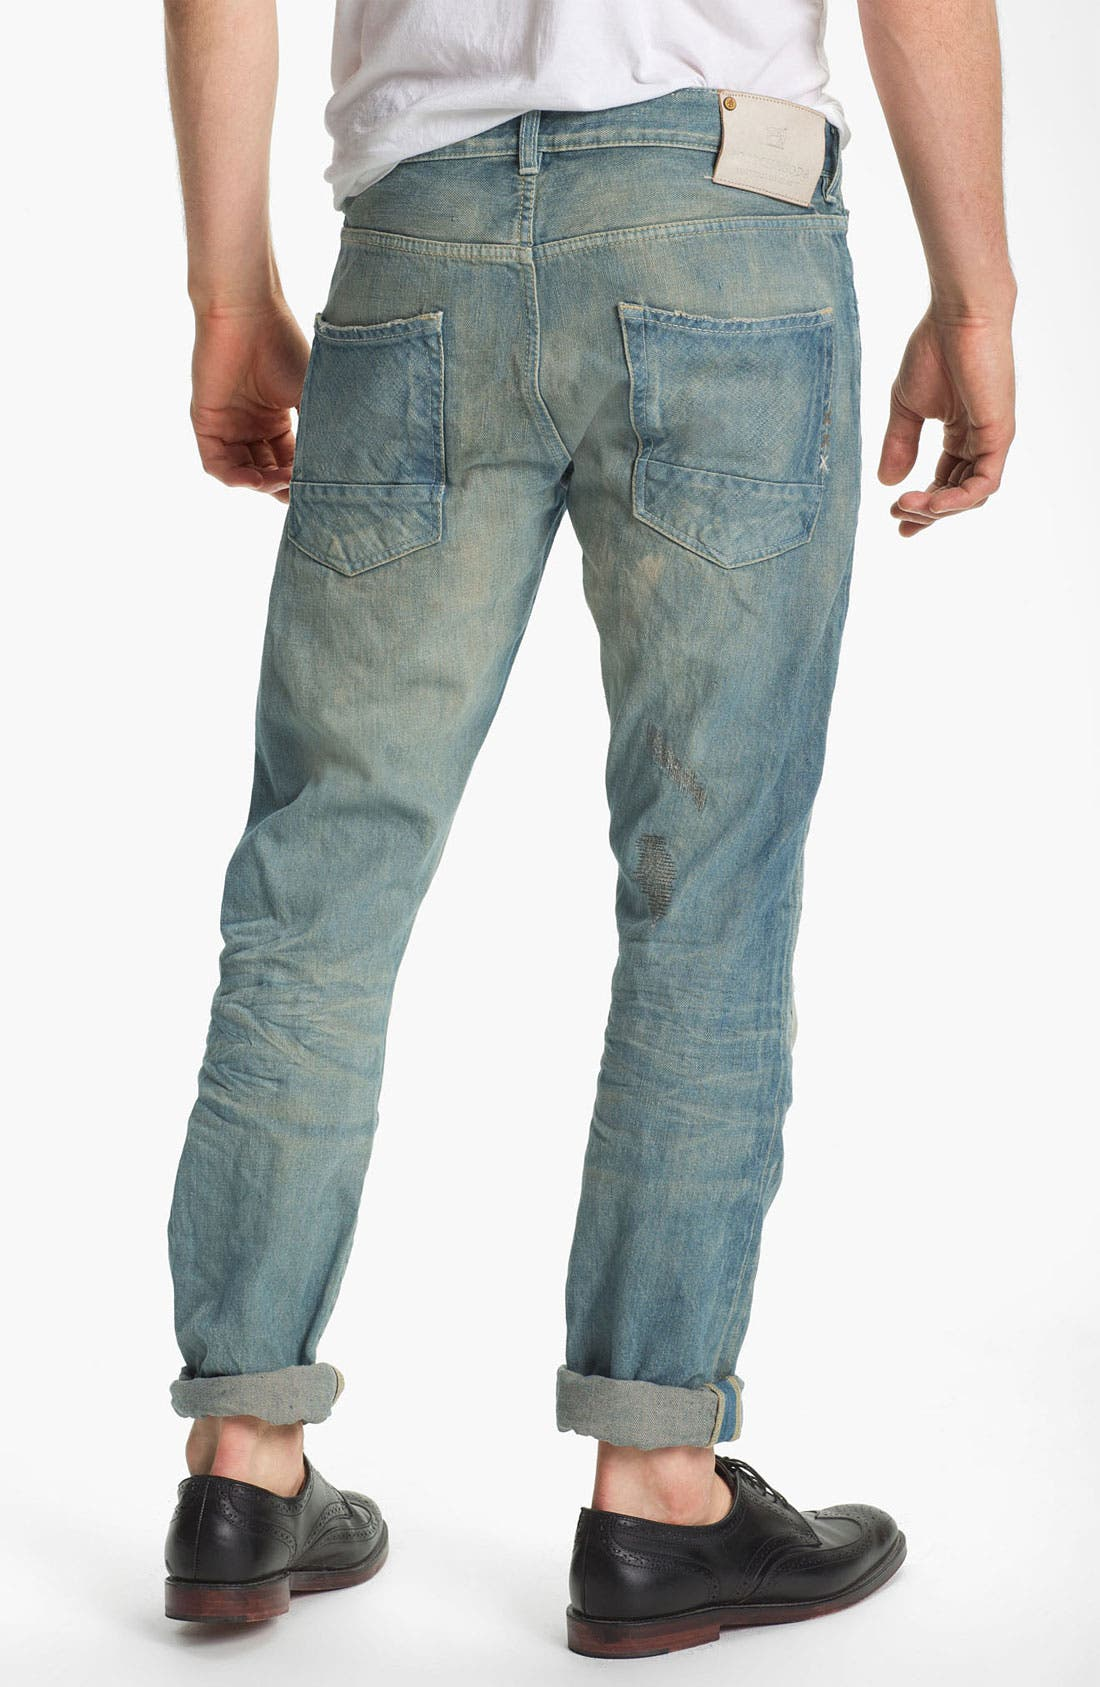 Alternate Image 1 Selected - Scotch & Soda 'Ralston' Slim Straight Leg Jeans (Time Capsule)